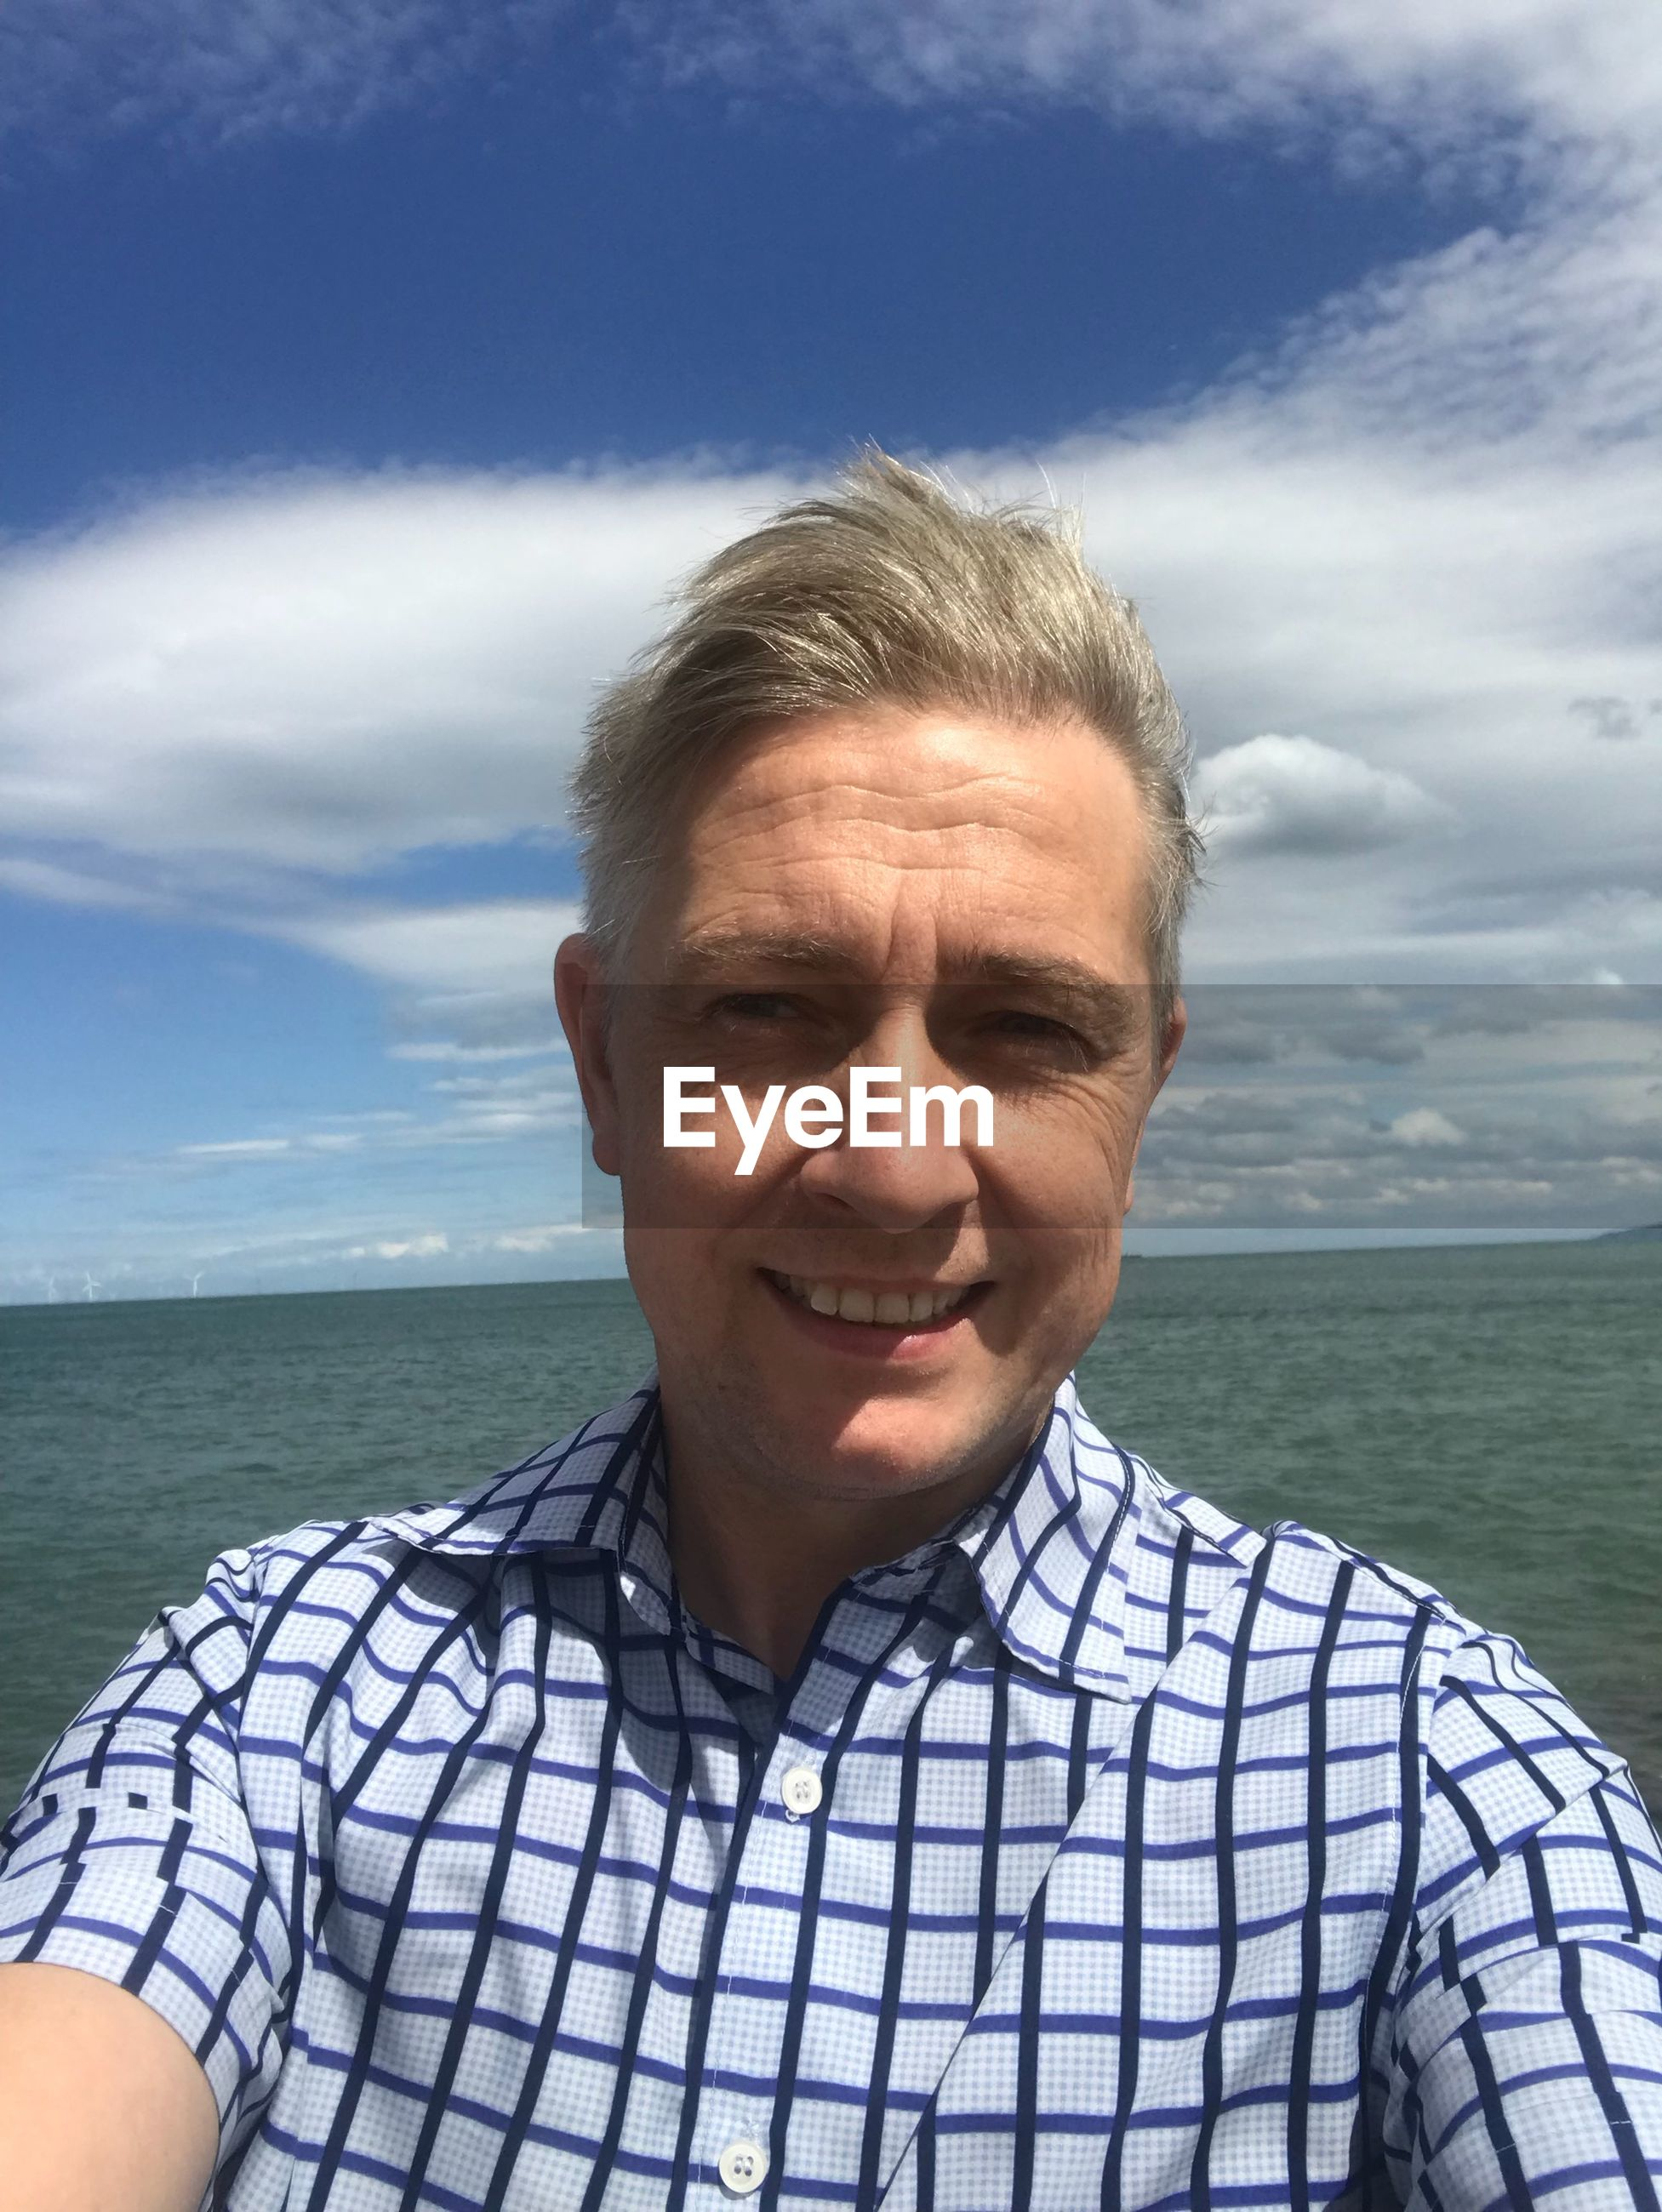 portrait, sea, front view, water, headshot, one person, sky, looking at camera, smiling, real people, cloud - sky, men, males, lifestyles, casual clothing, beauty in nature, leisure activity, mature adult, mature men, horizon over water, outdoors